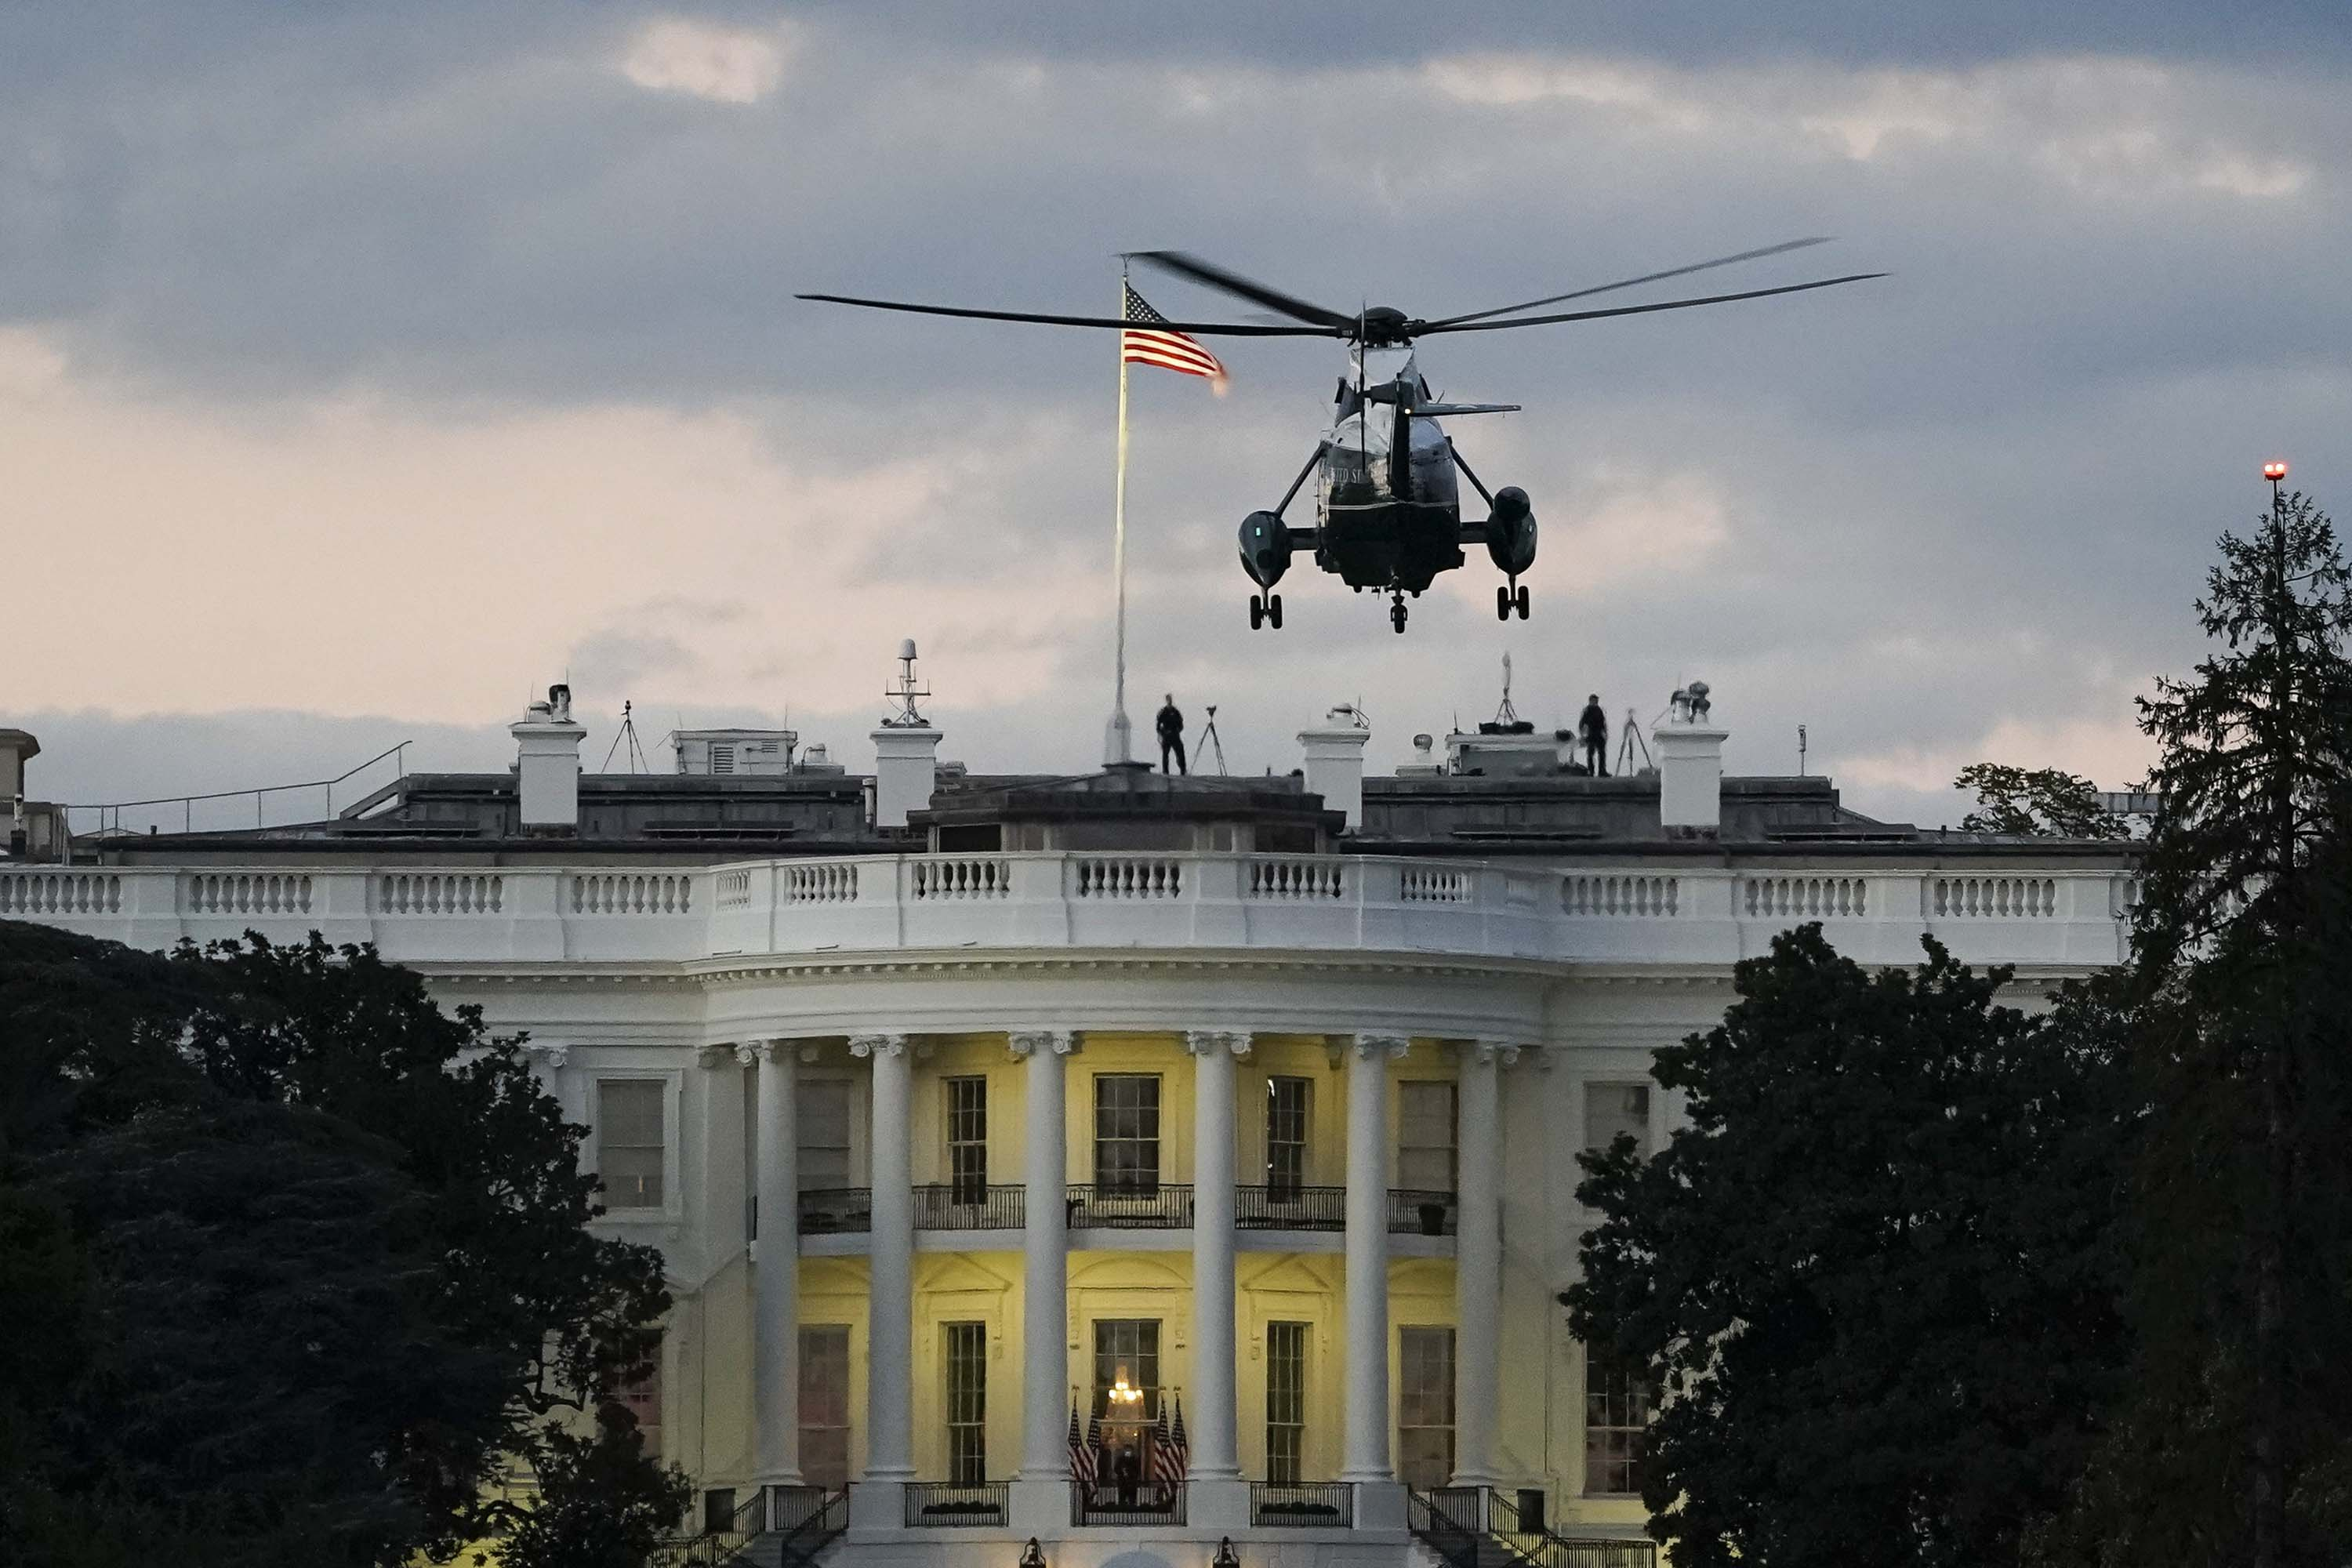 U.S. Marine One, with President Donald Trump onboard, prepares to land on the South Lawn of the White House on October 5.